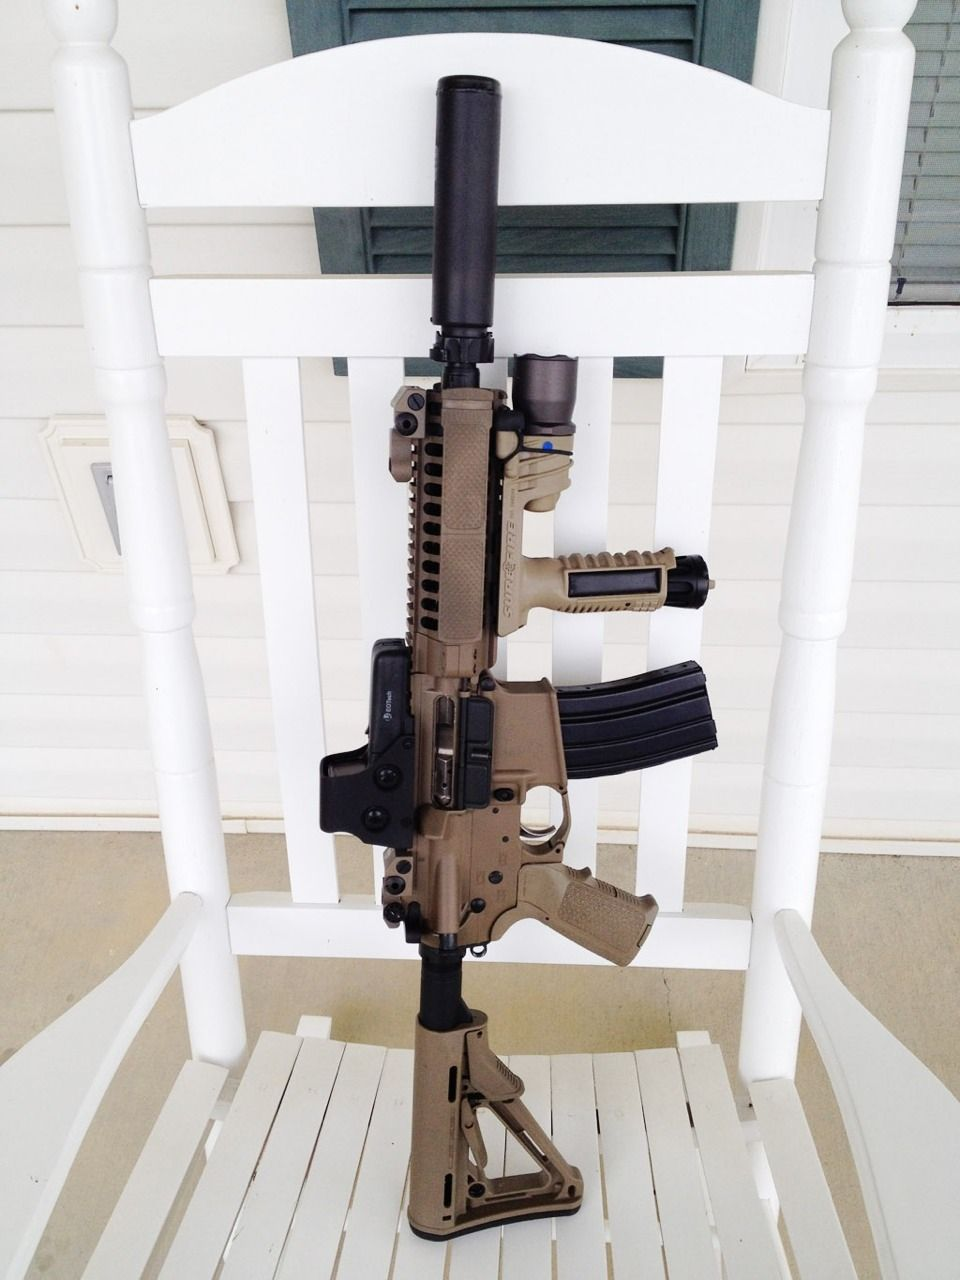 This is what ill be holding when im 70 years old rocking on my front porch and a custom rocking chair holster with an hk usp for secondary